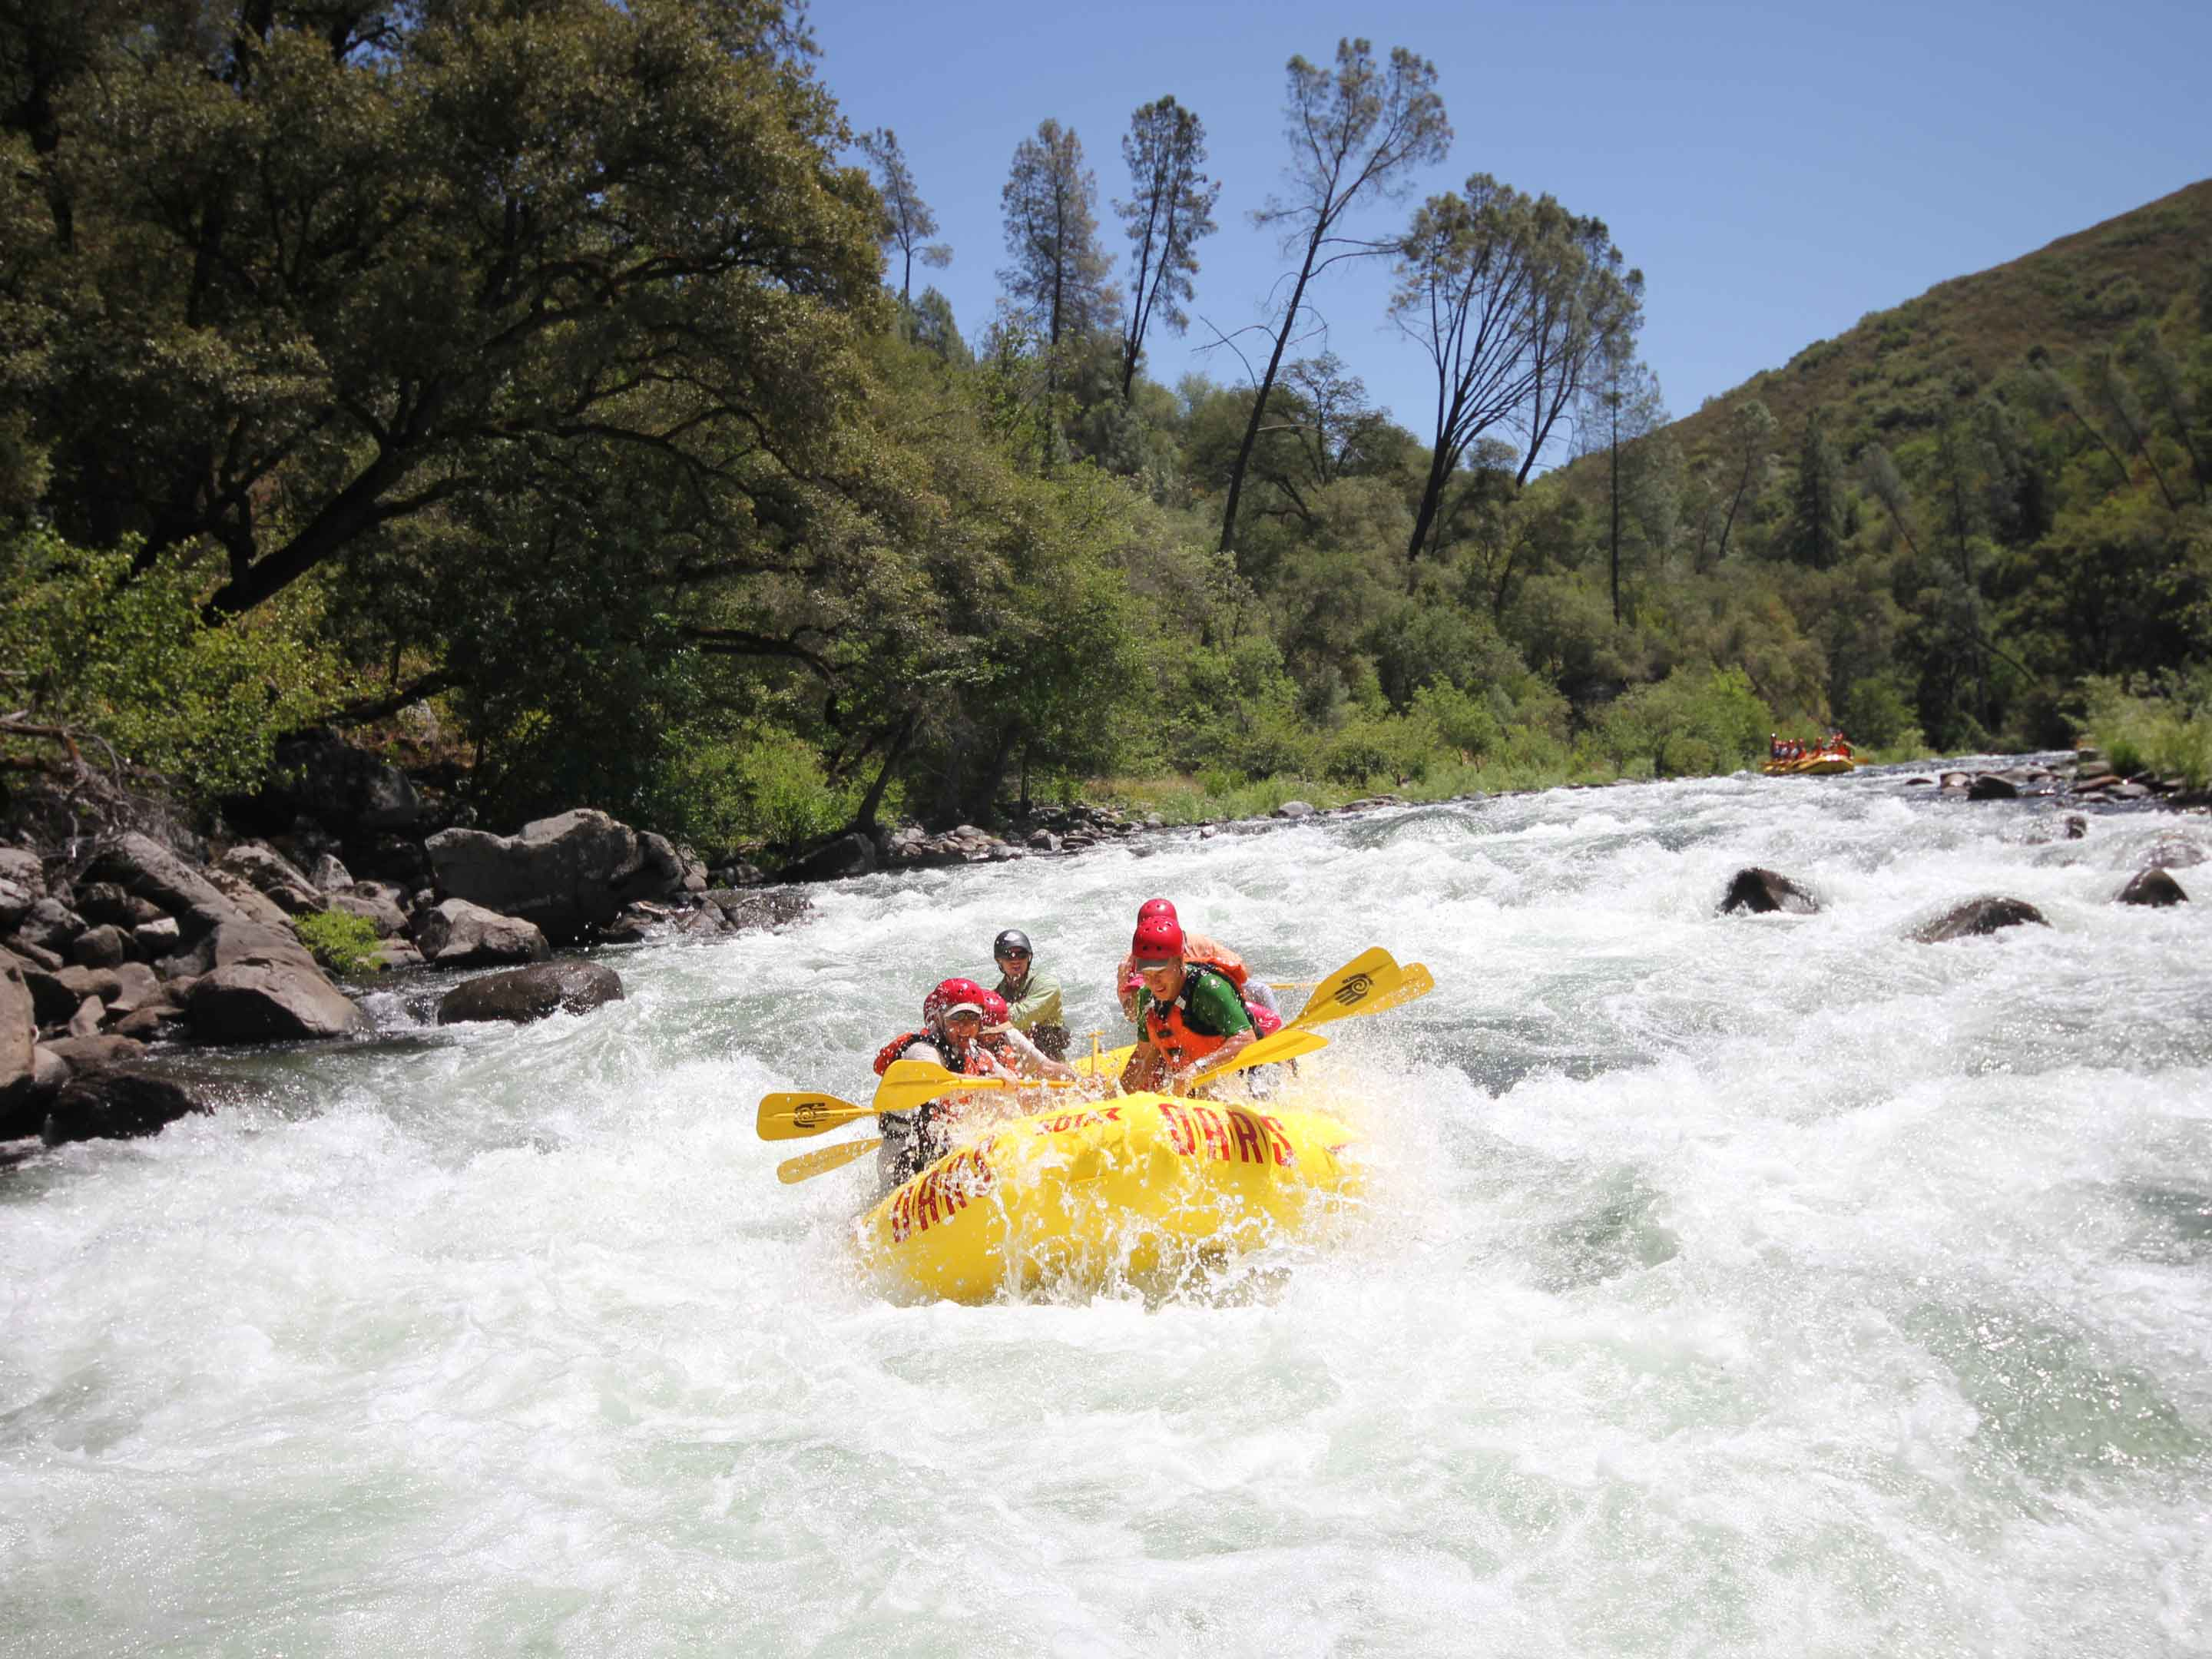 Tuolumne River Whitewater Rafting Near Yosemite